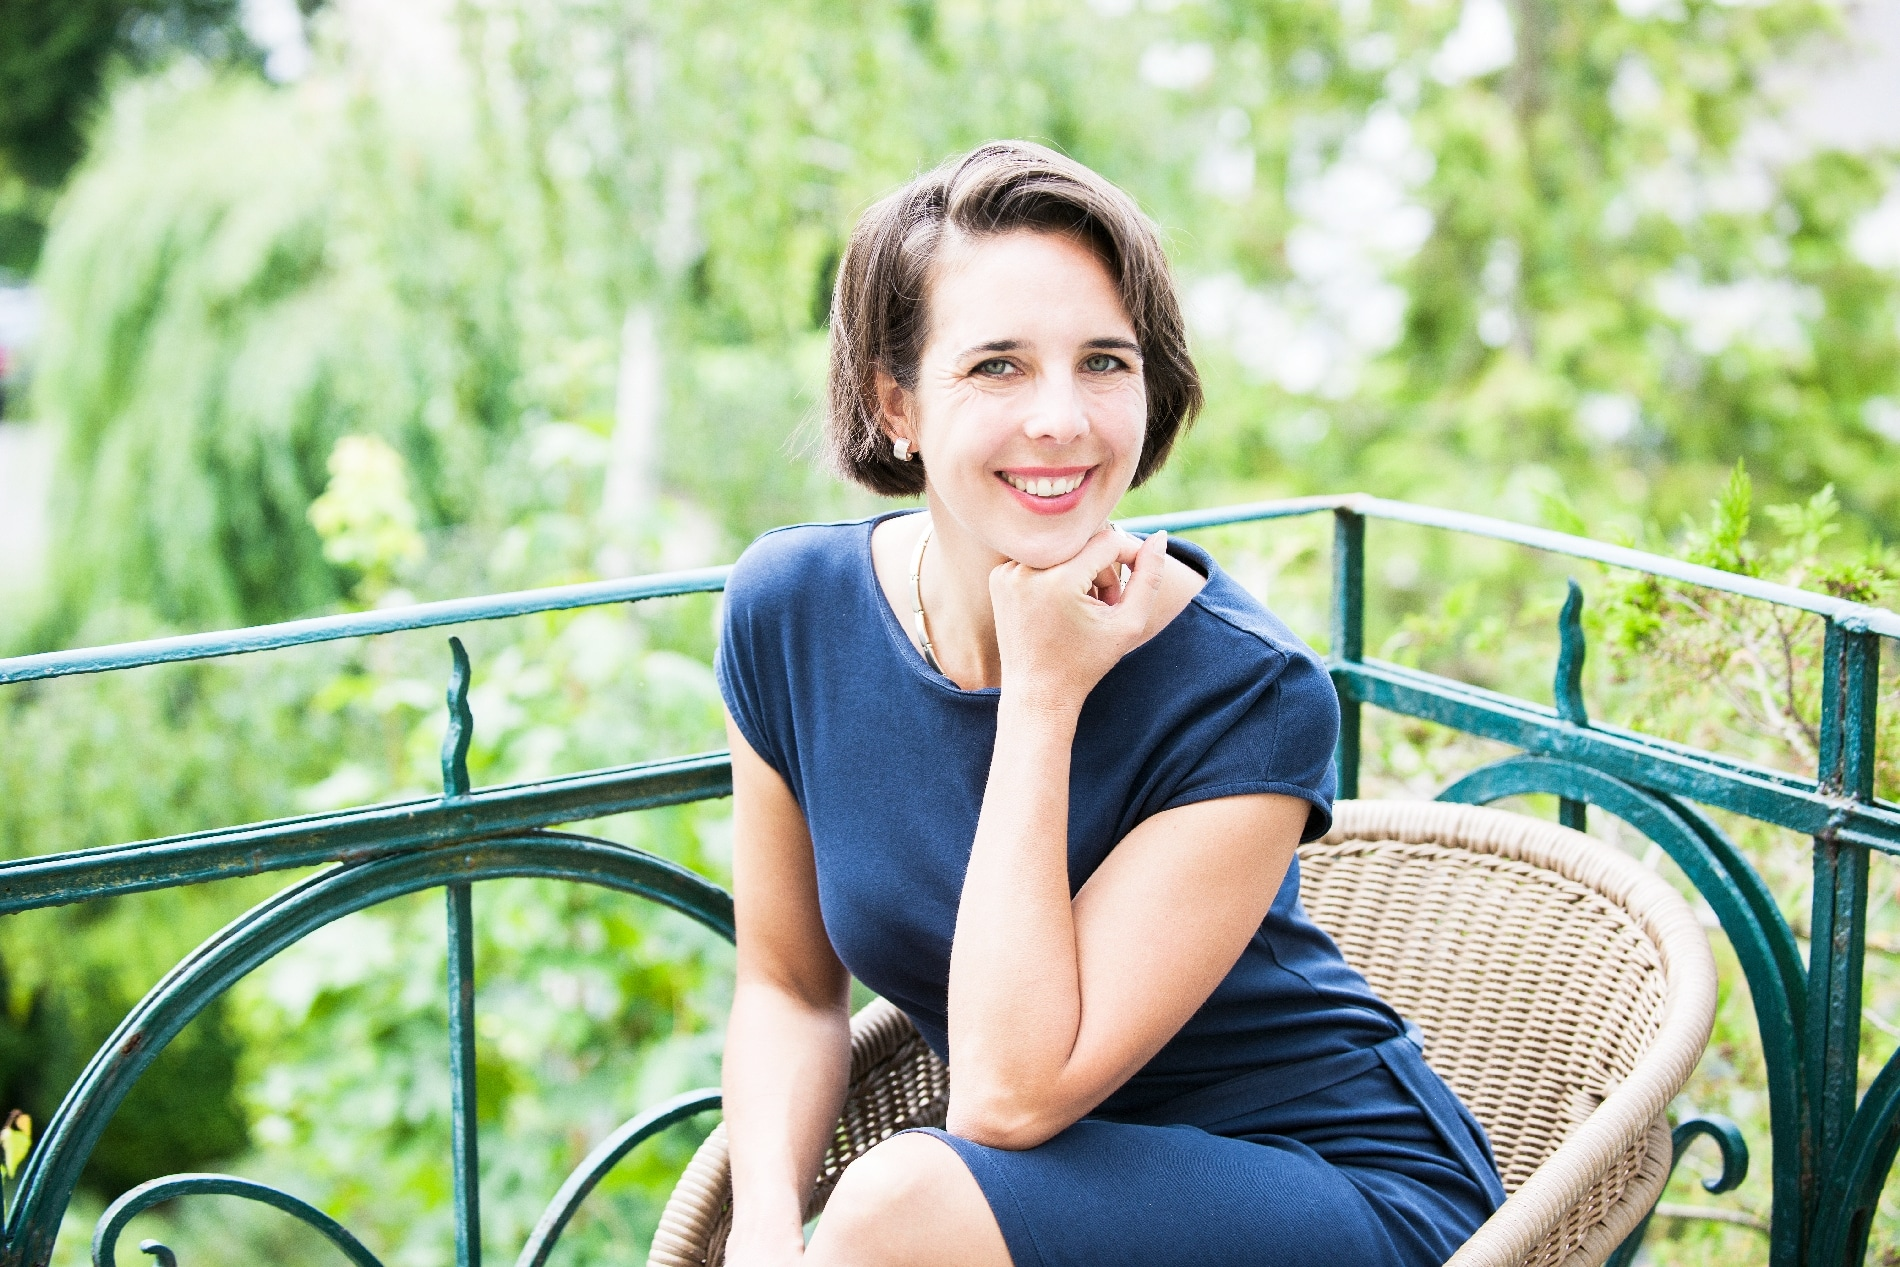 hannover-coaching-in-hannover-business-coaching-hannover-fuerungskraefte-coaching-hannover-persoenlichkeitscoaching-hannover-ines-mikisek-portrait-sitzend-QF